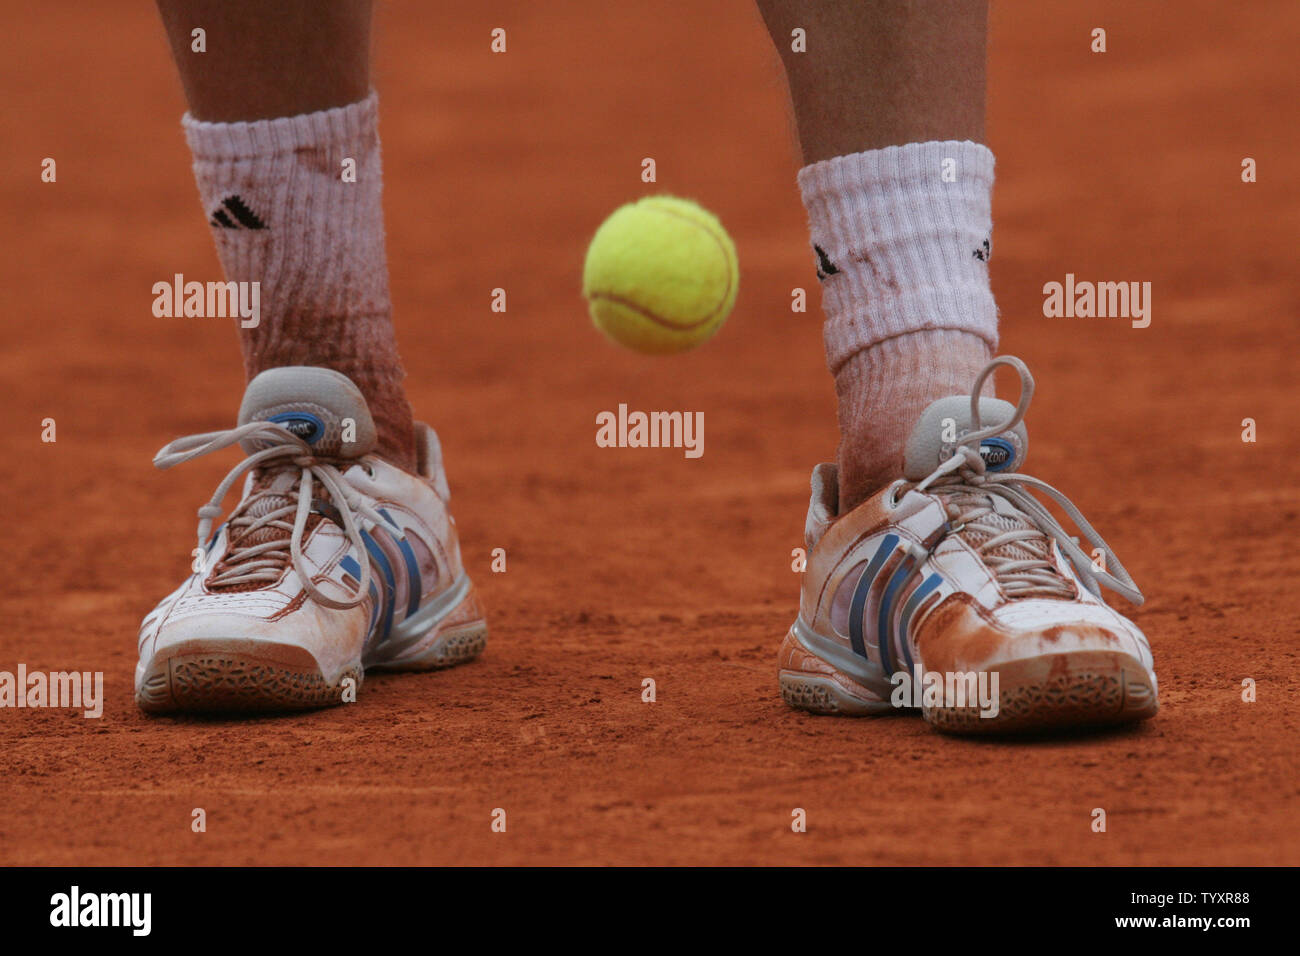 The Shoes Of Frenchman Paul Henri Mathieu Show The Effect Of The Clay Courts During His